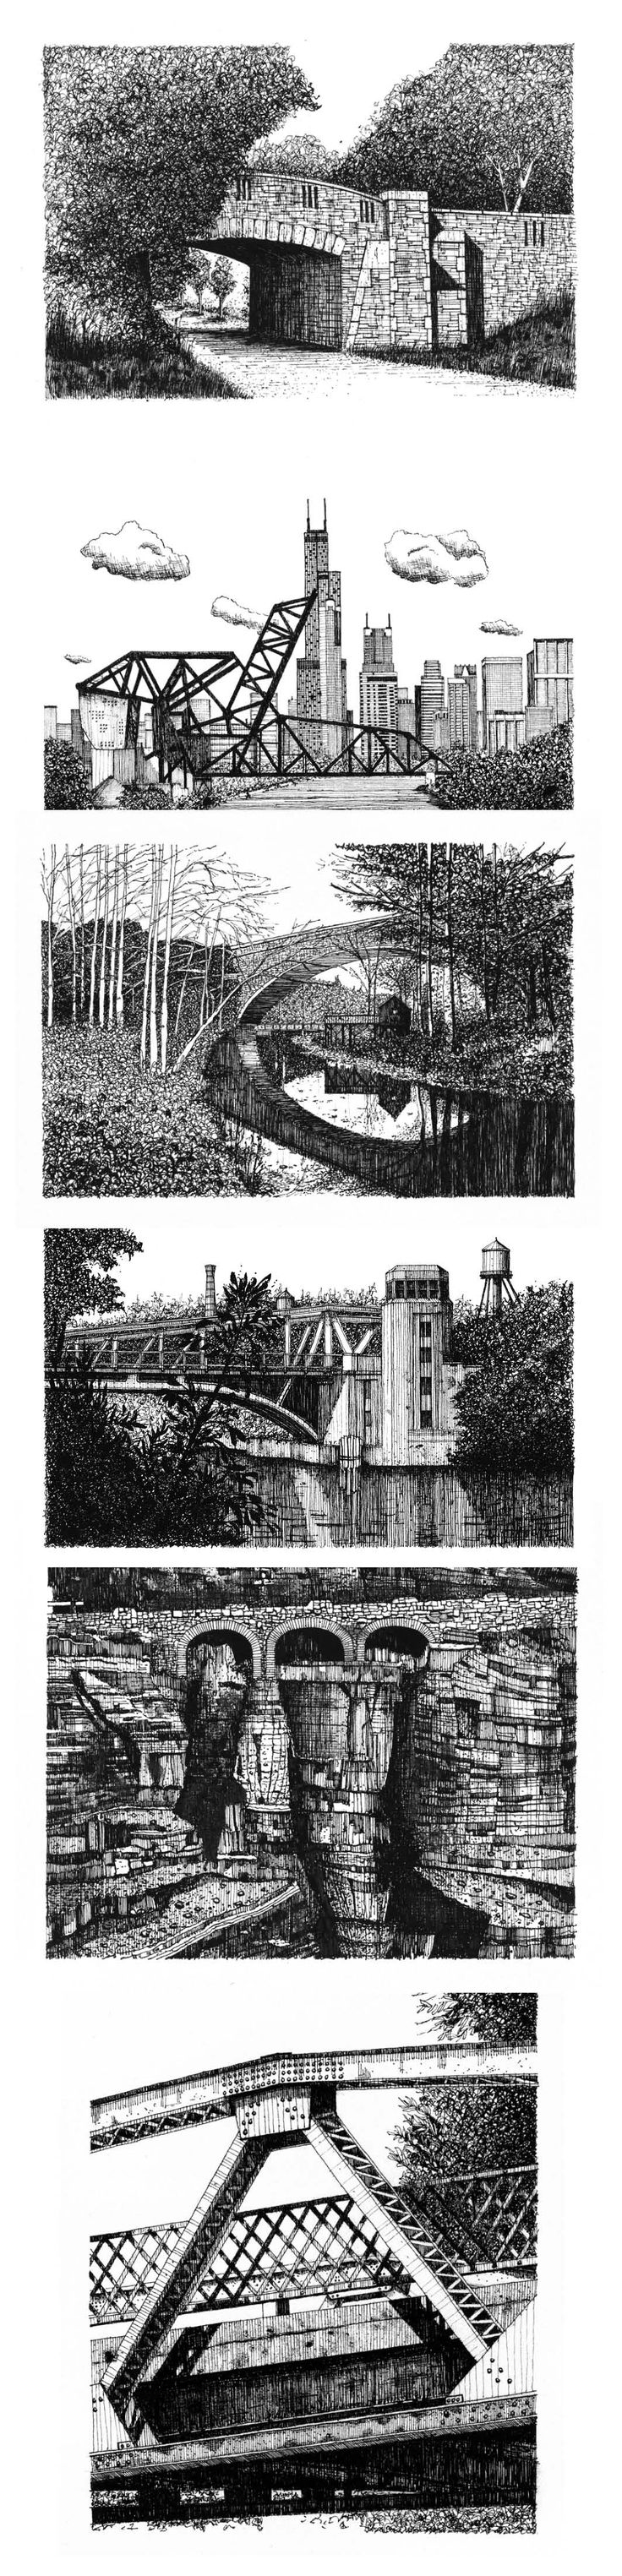 """Six bridges in pen and ink: (Top to bottom) Chicago Stone Bridge, Chicago, IL., 8""""x12"""" 18th Street Bridge, Chicago, IL., 8""""x12"""" Cabin John Bridge, Washington D.C, 8""""x12"""" Canal Street Bridge, Chicago, IL, 8""""x12"""" Triple Arches, Glacier National Park, 8""""x10"""" Bascule Bridge Detail, 8""""x10"""" Prints of each drawing are available in the store at www.andrewbanksillustration.com."""